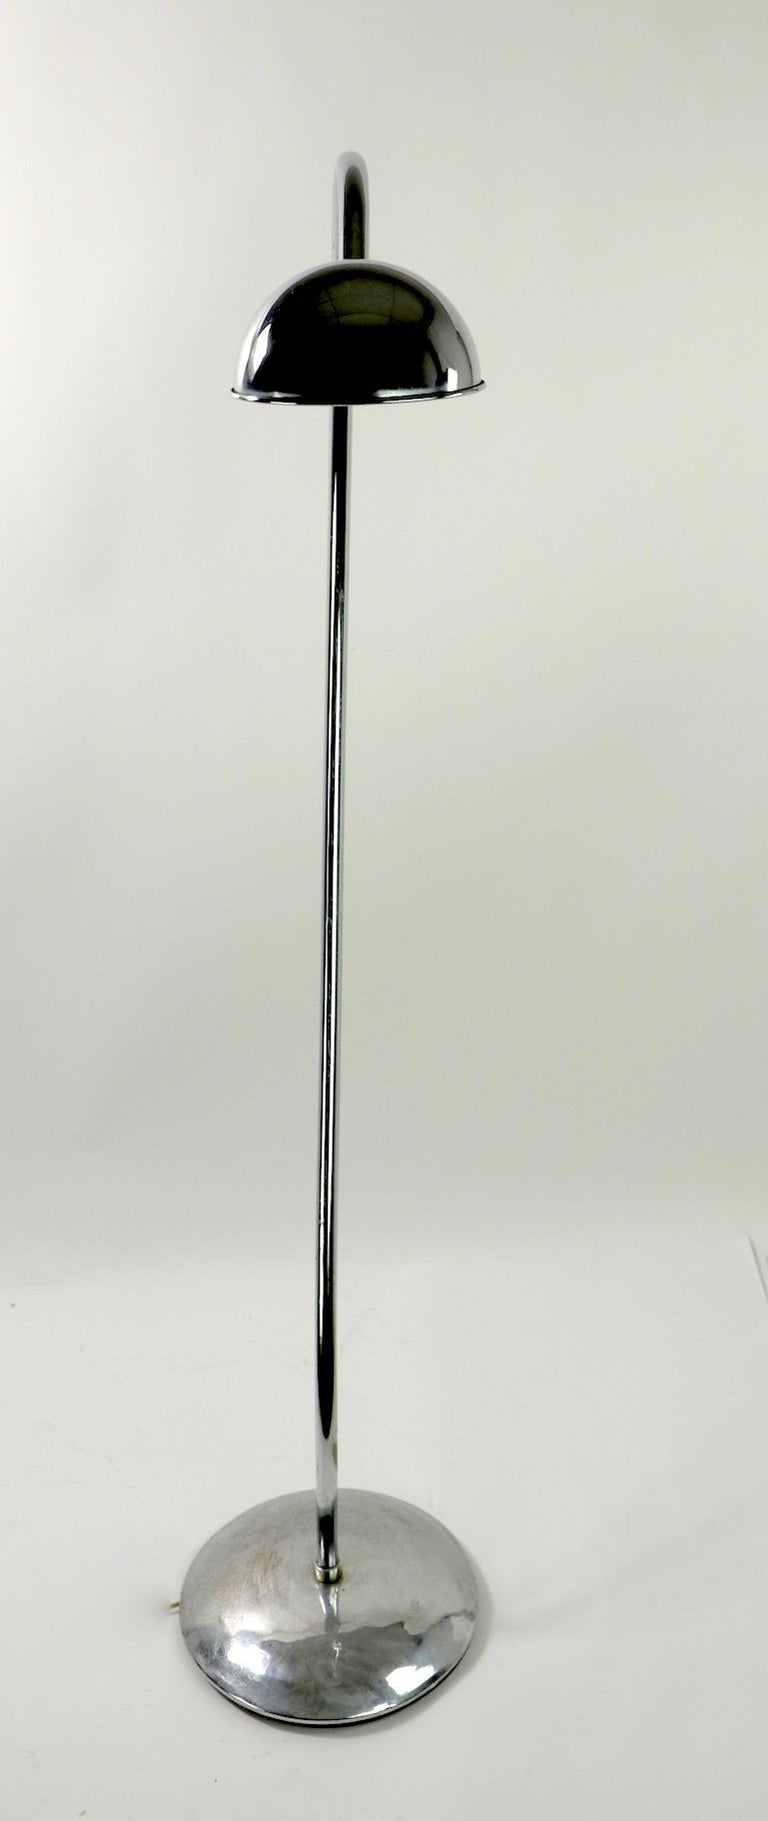 Machine Age Art Deco Chrome Floor Lamp of Exaggerated Curved Form For Sale 6